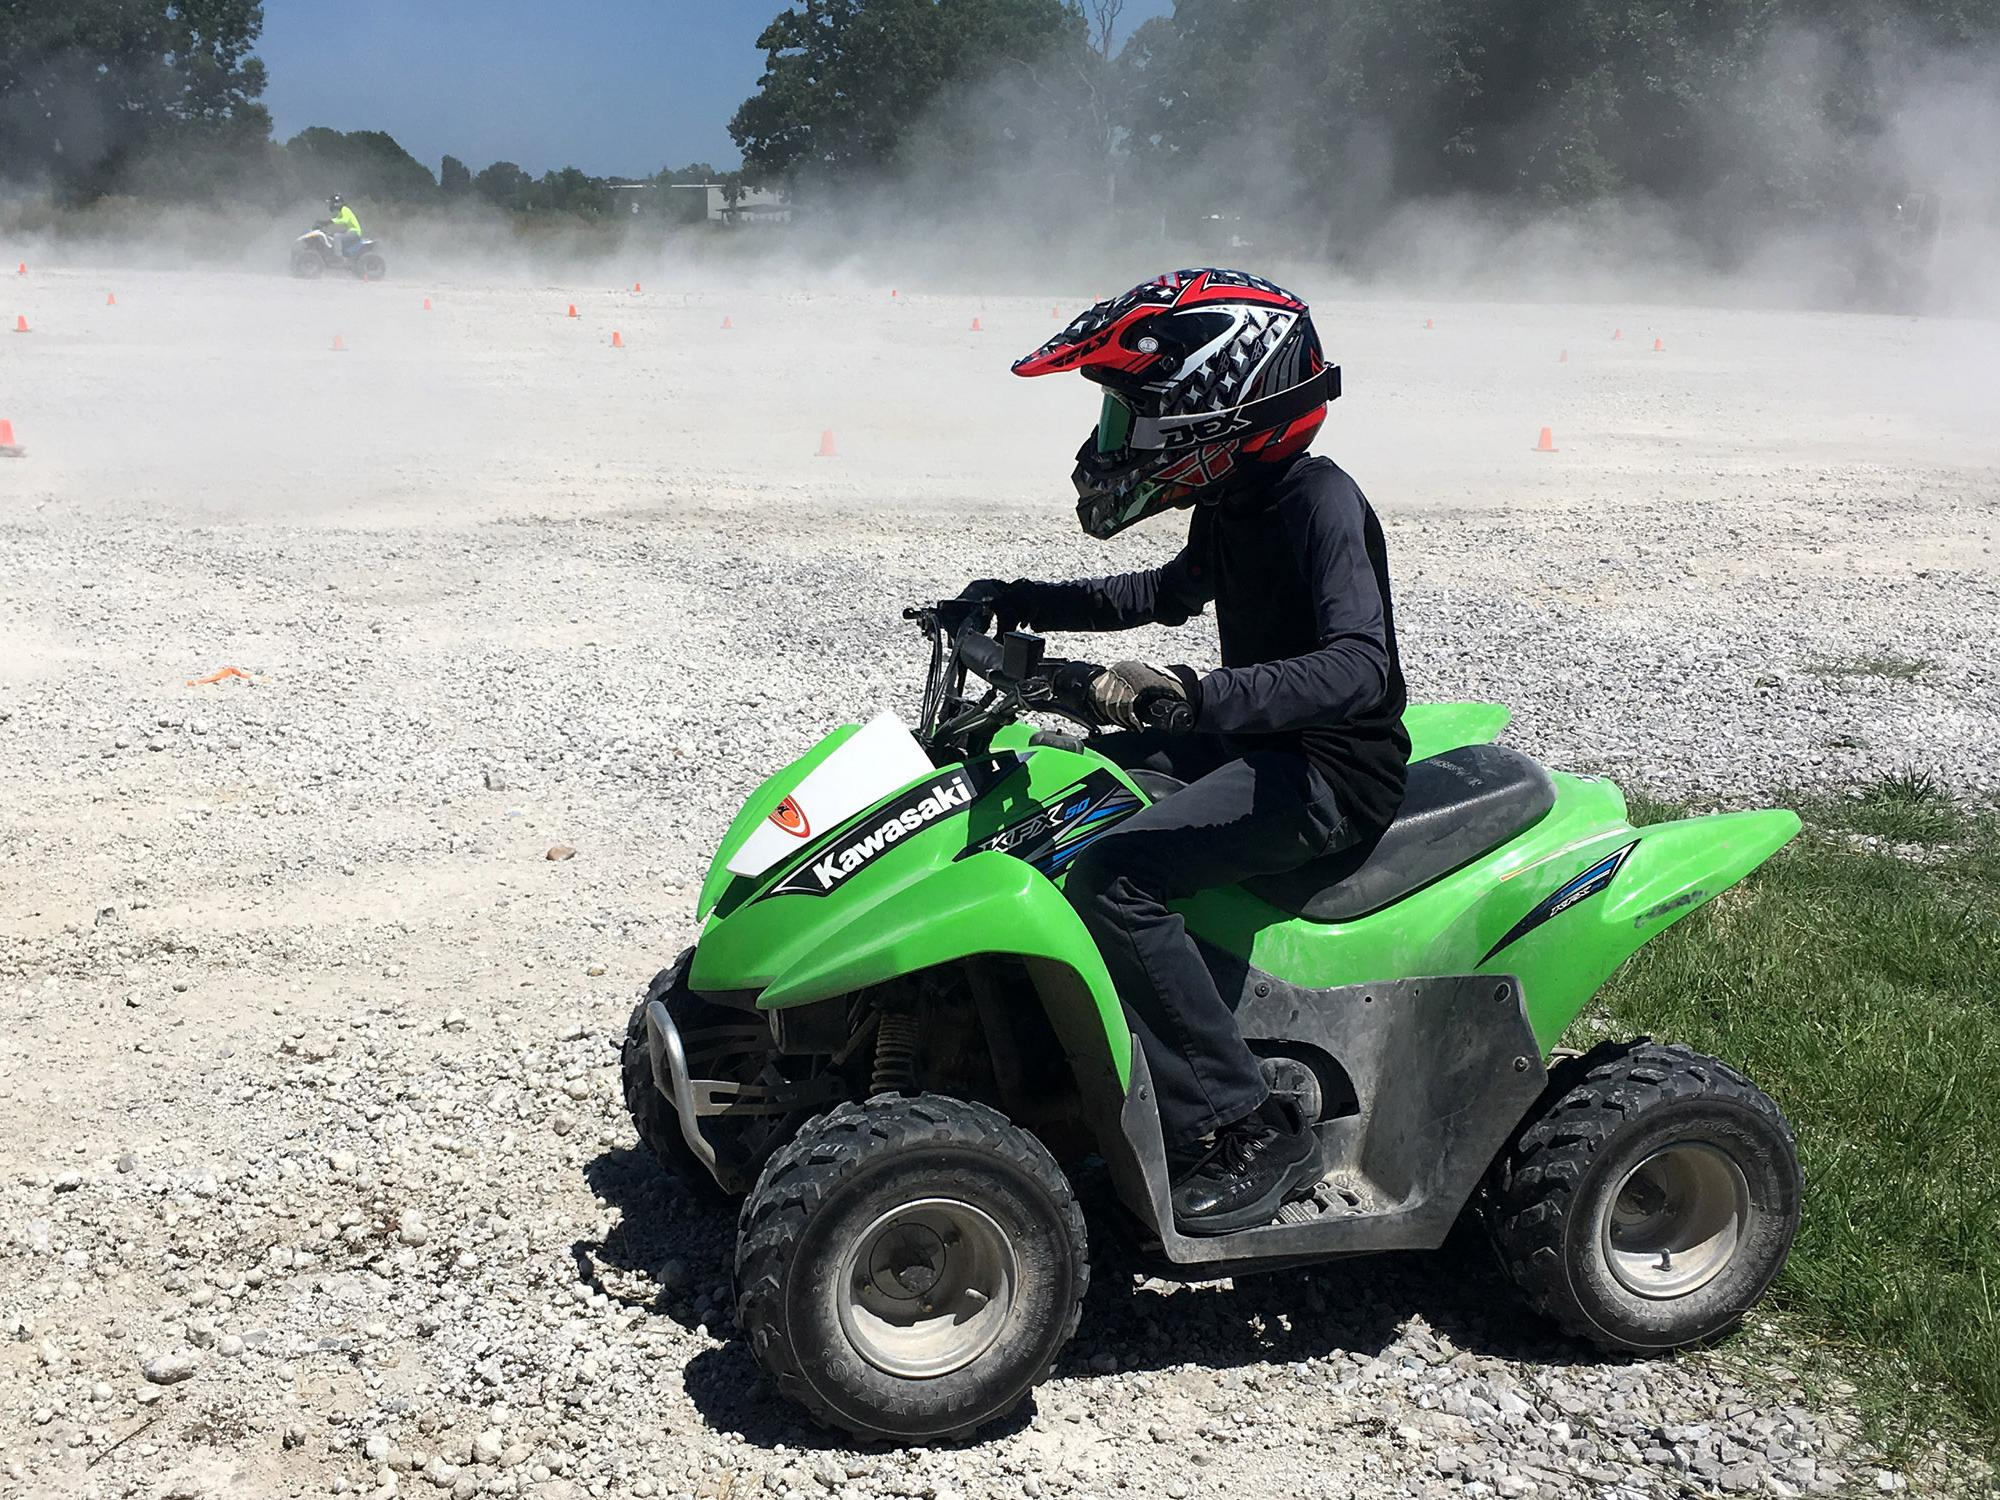 Atv Safety Is Focus Of Extension 4 H Training June 3 7 Mississippi State University Extension Service